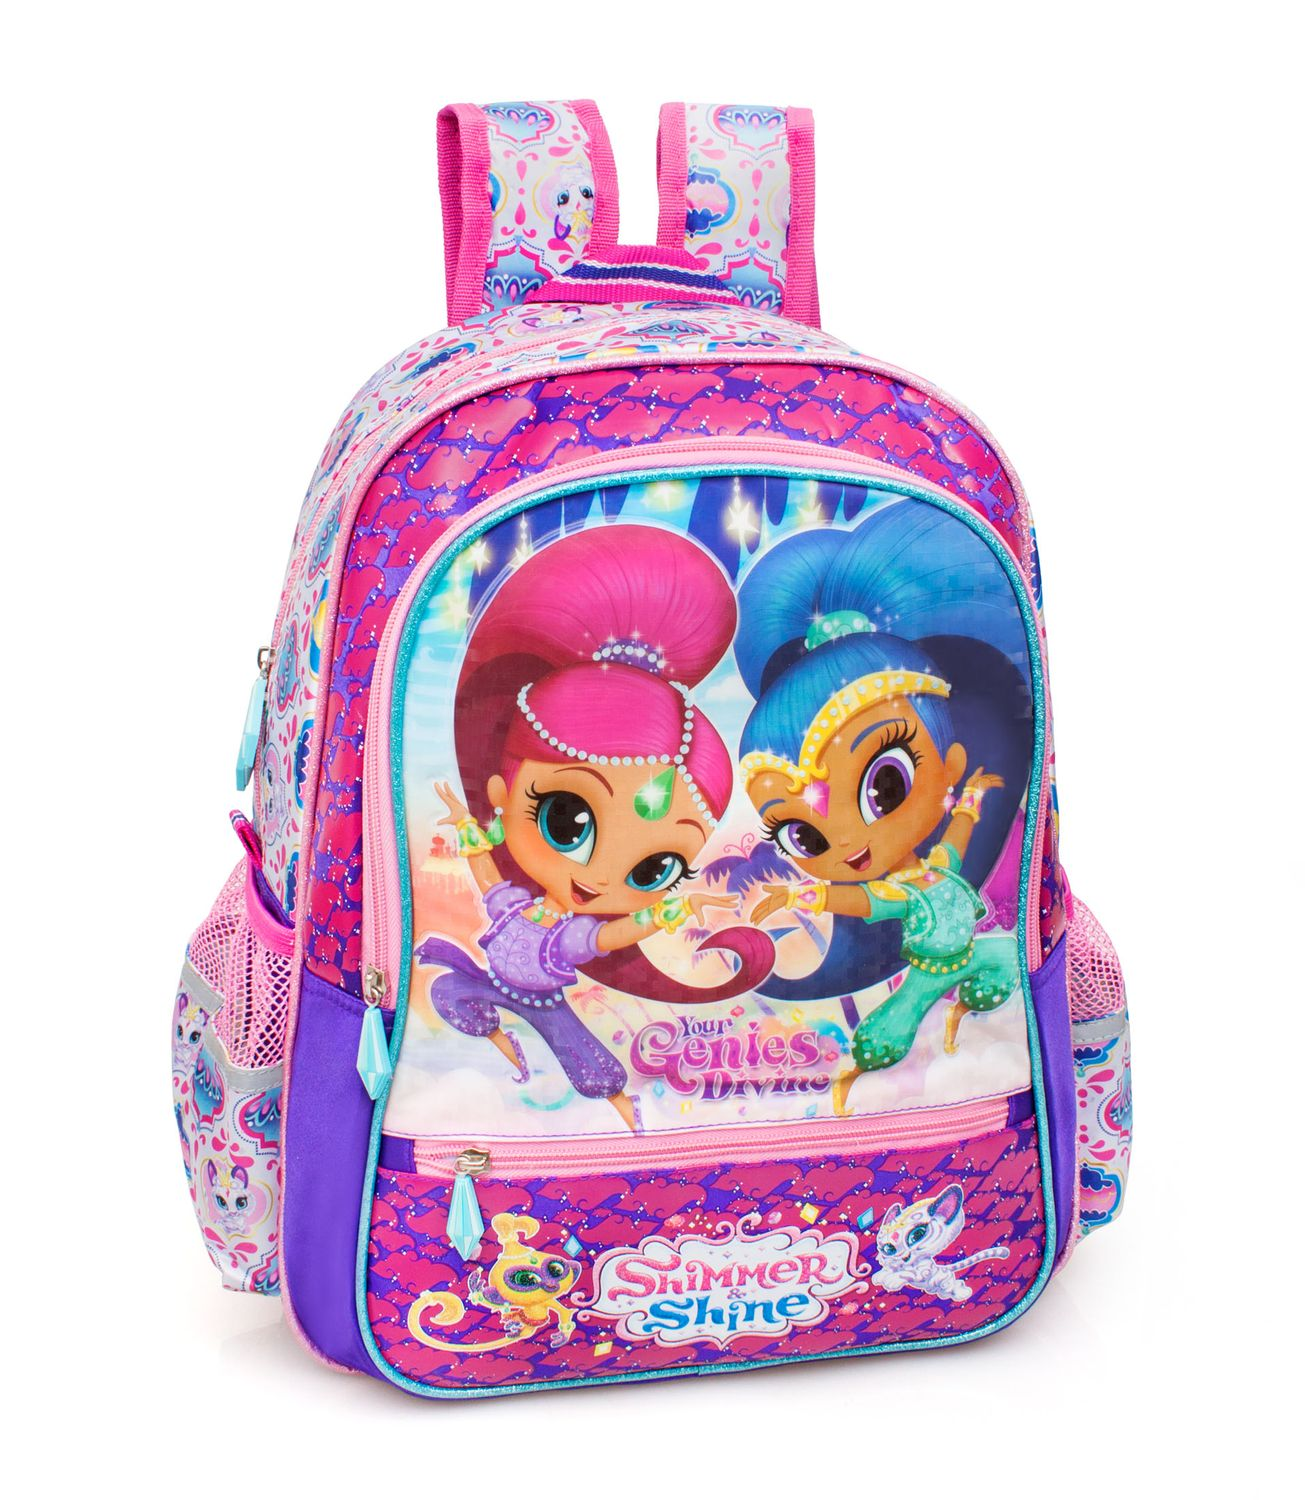 Shimmer & Shine DIVINE Premium Large Backpack